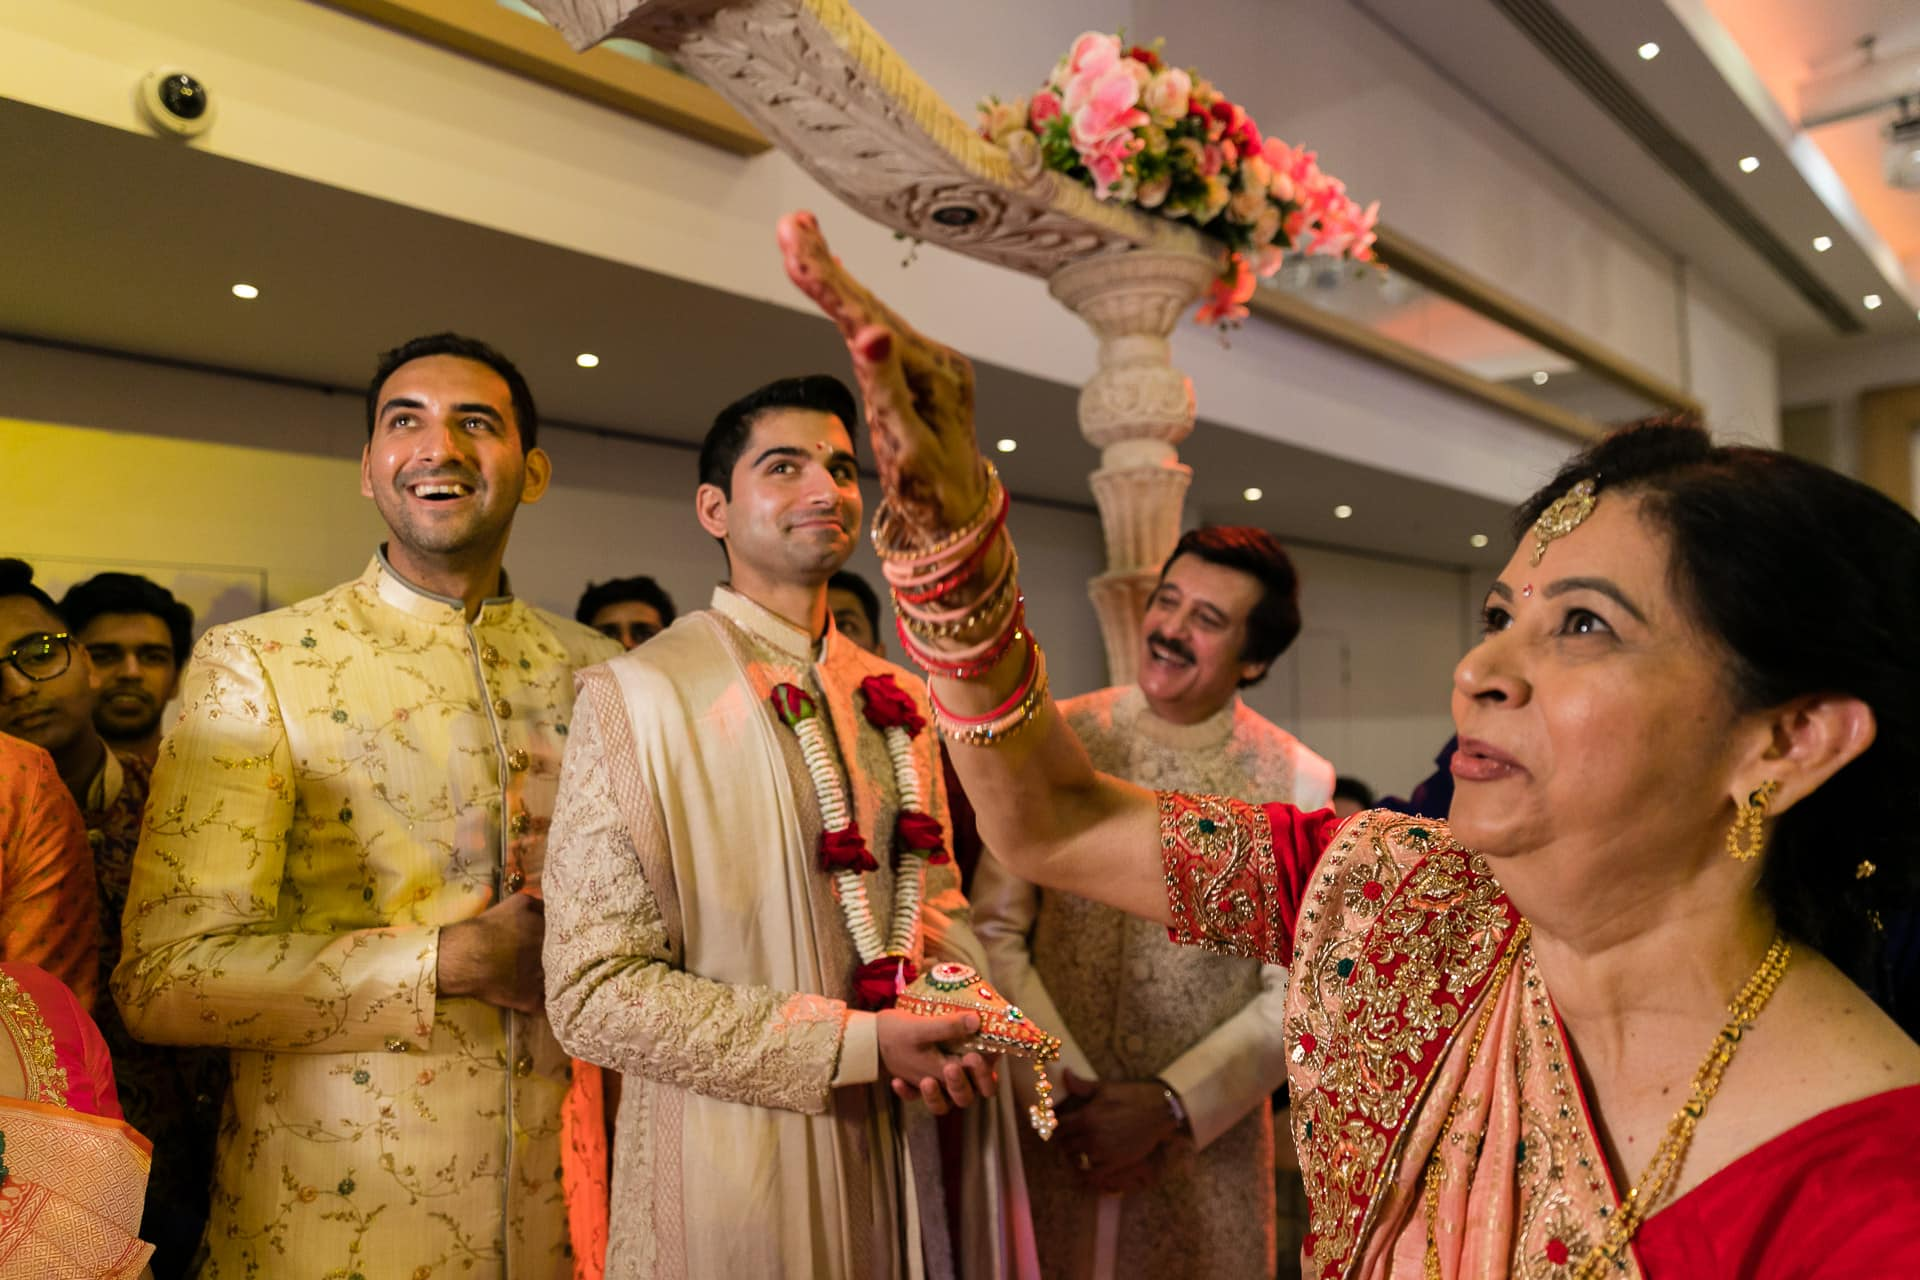 Gujarati wedding welcoming ceremony